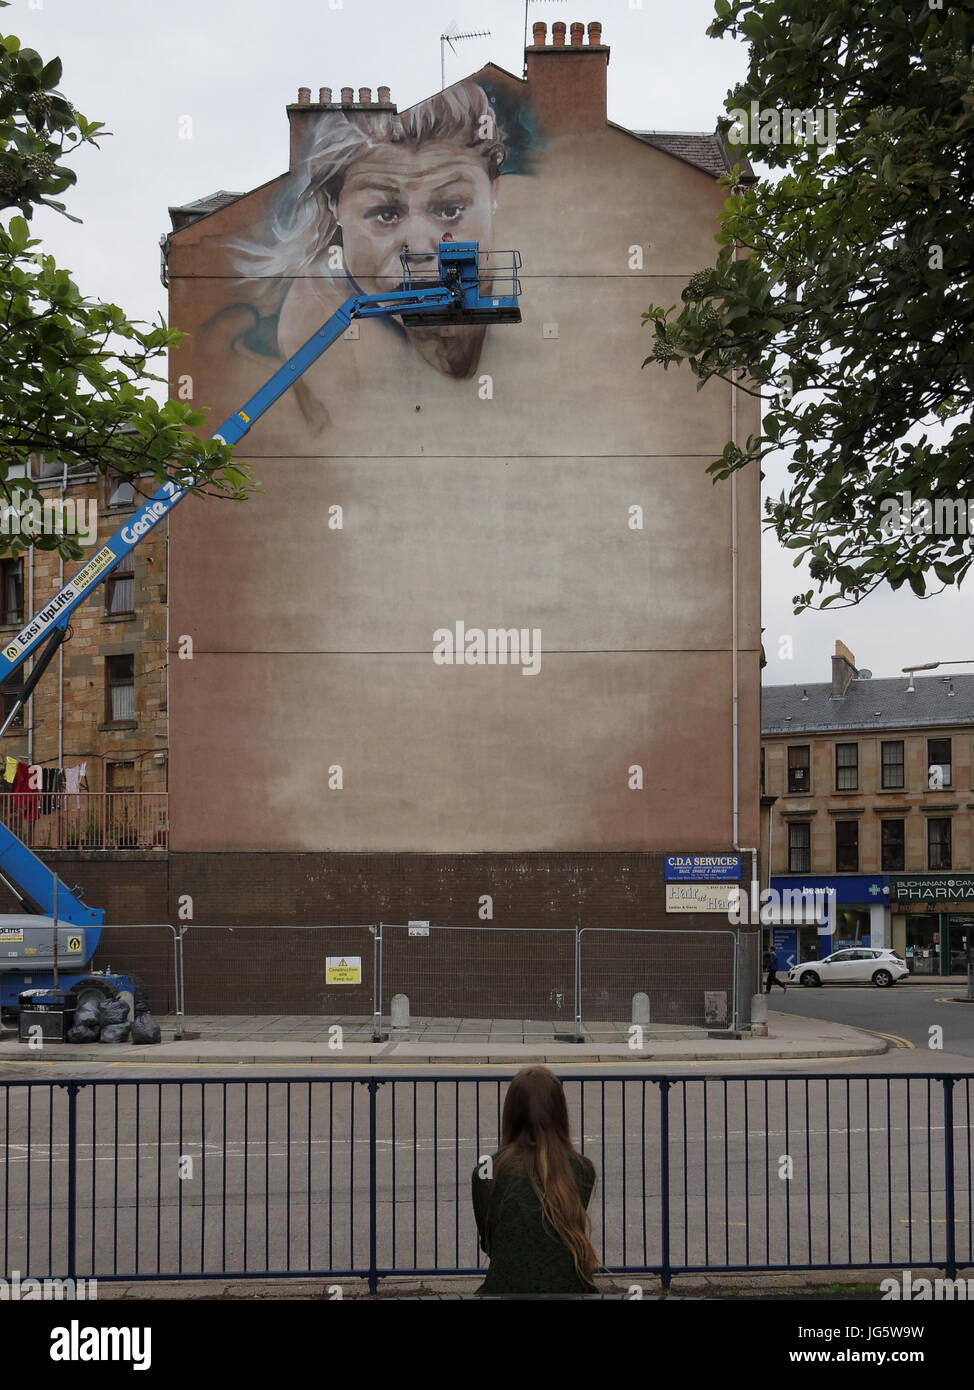 street mural being done for the 2014 Commonwealth games young girl possibly imagines herself as being the subject - Stock Image